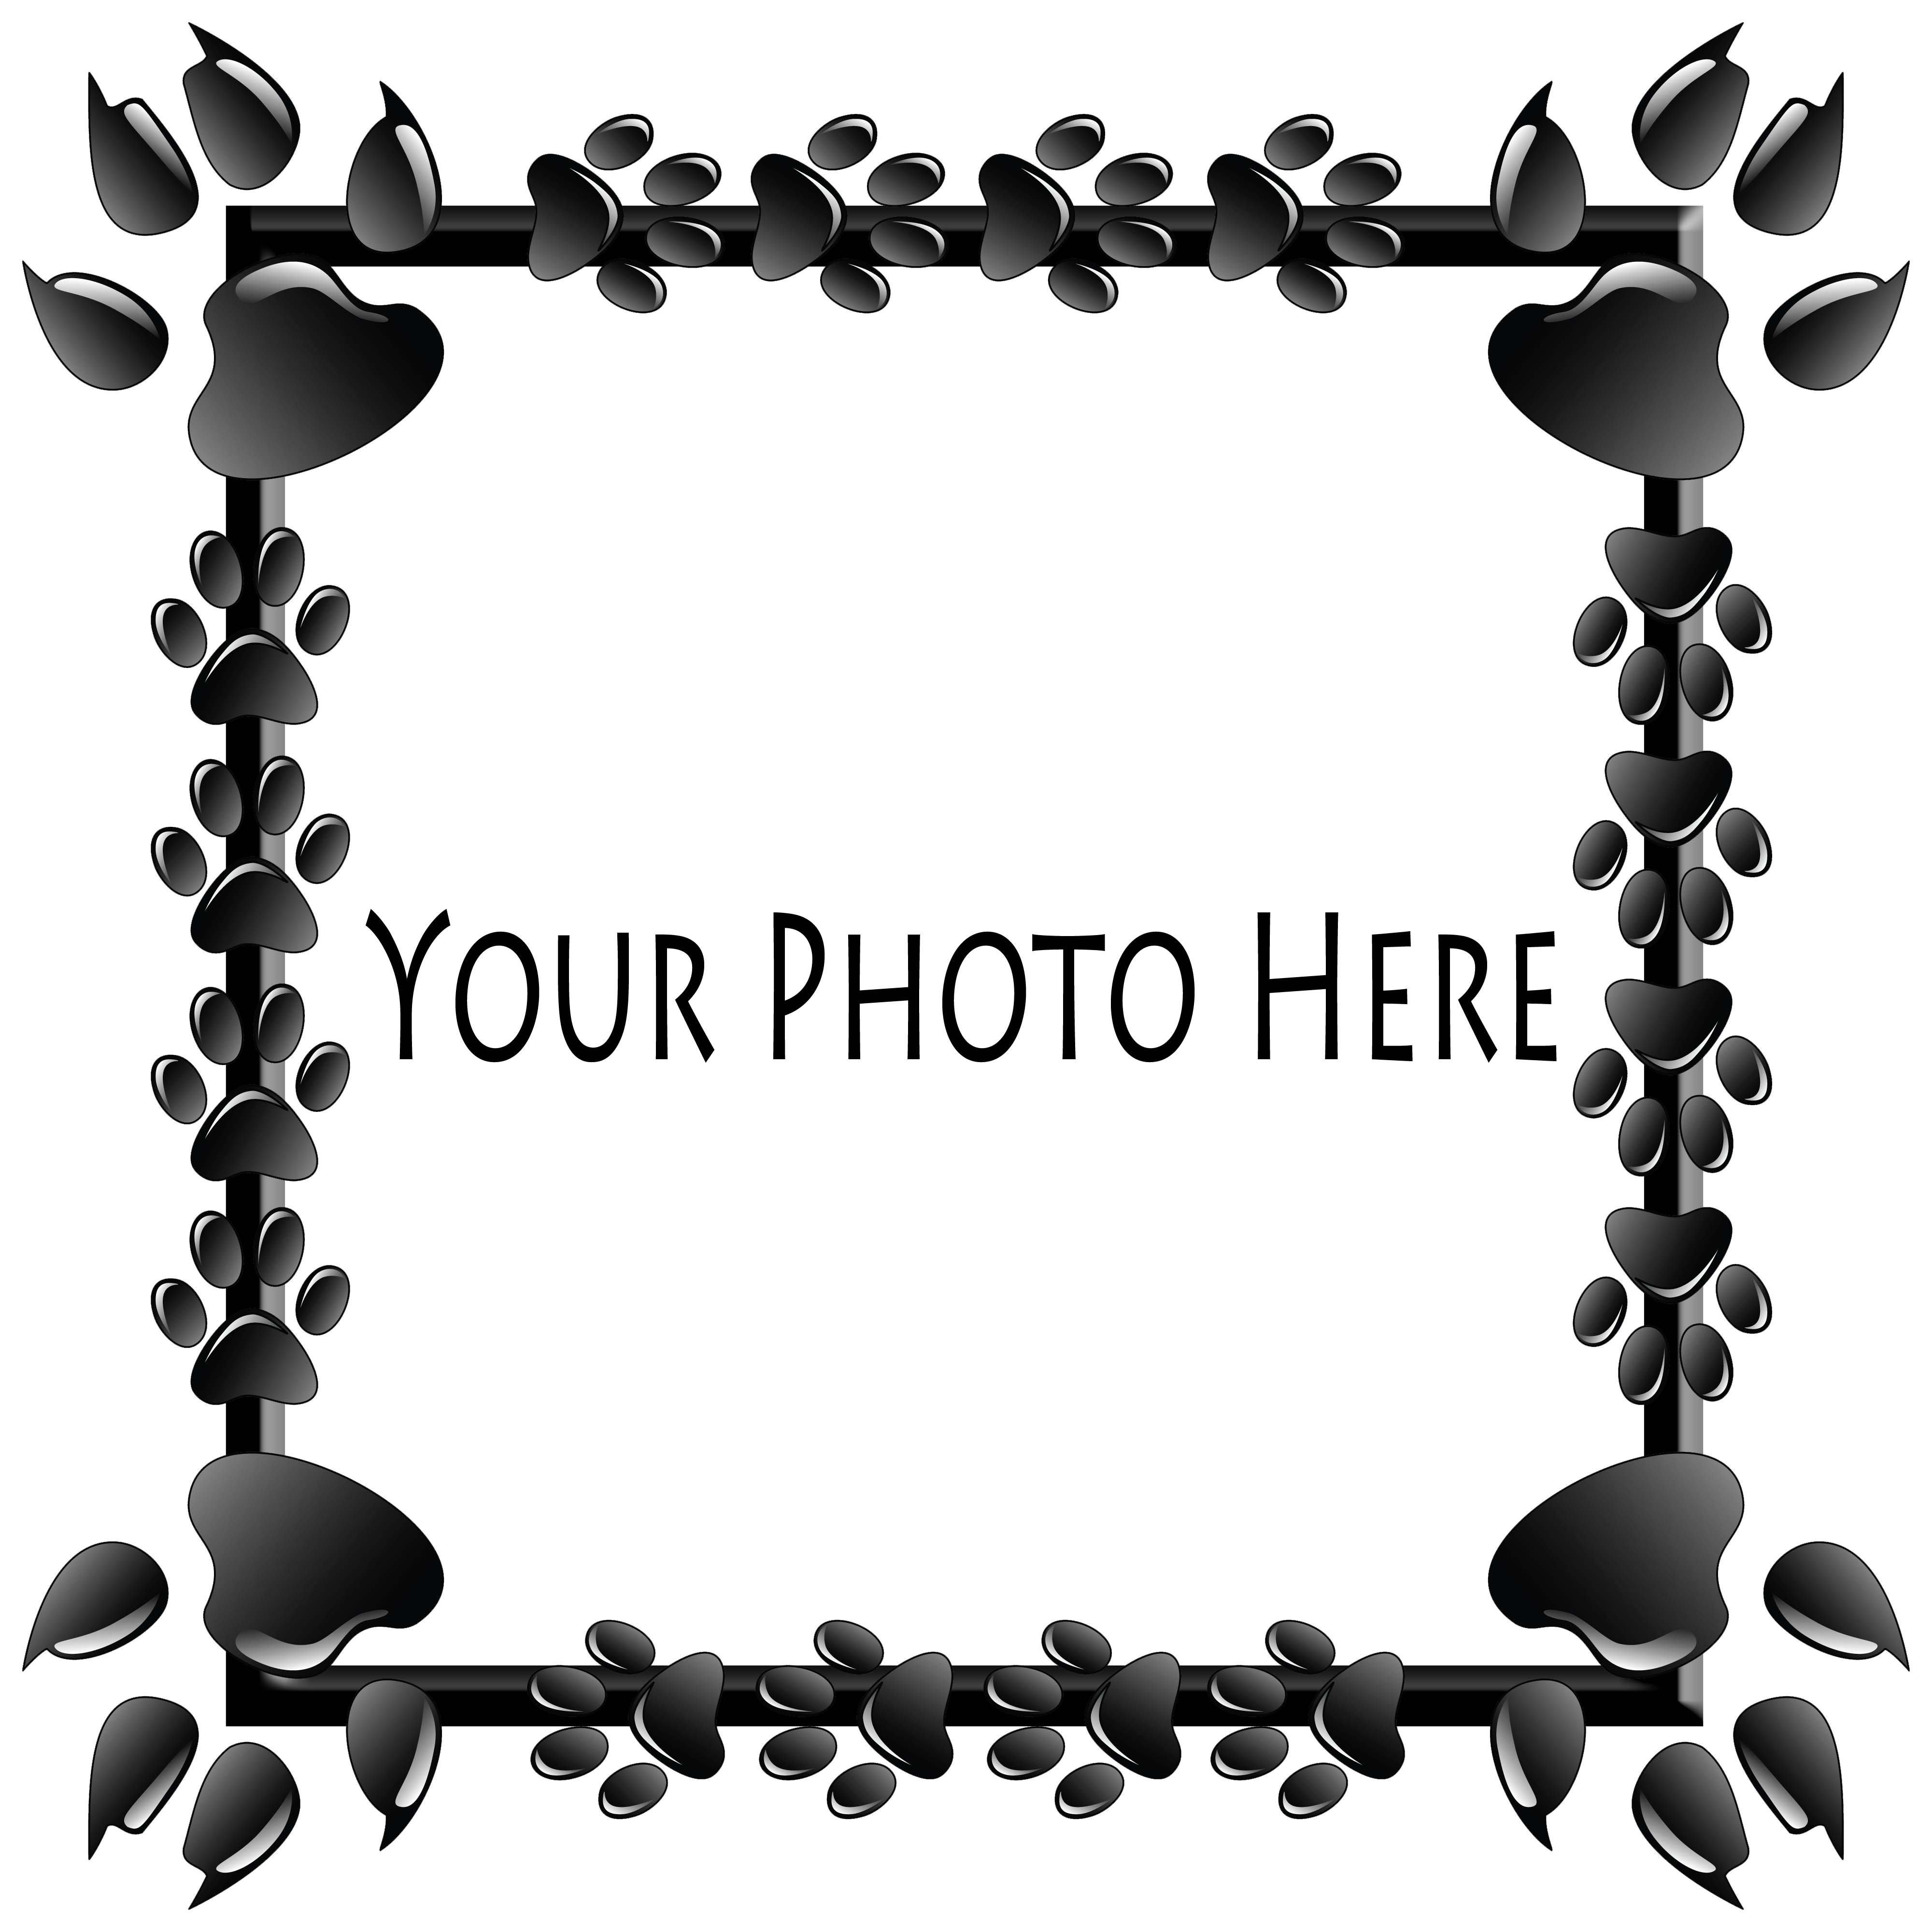 add-pet-photo-inside-black-paws-frame-#2